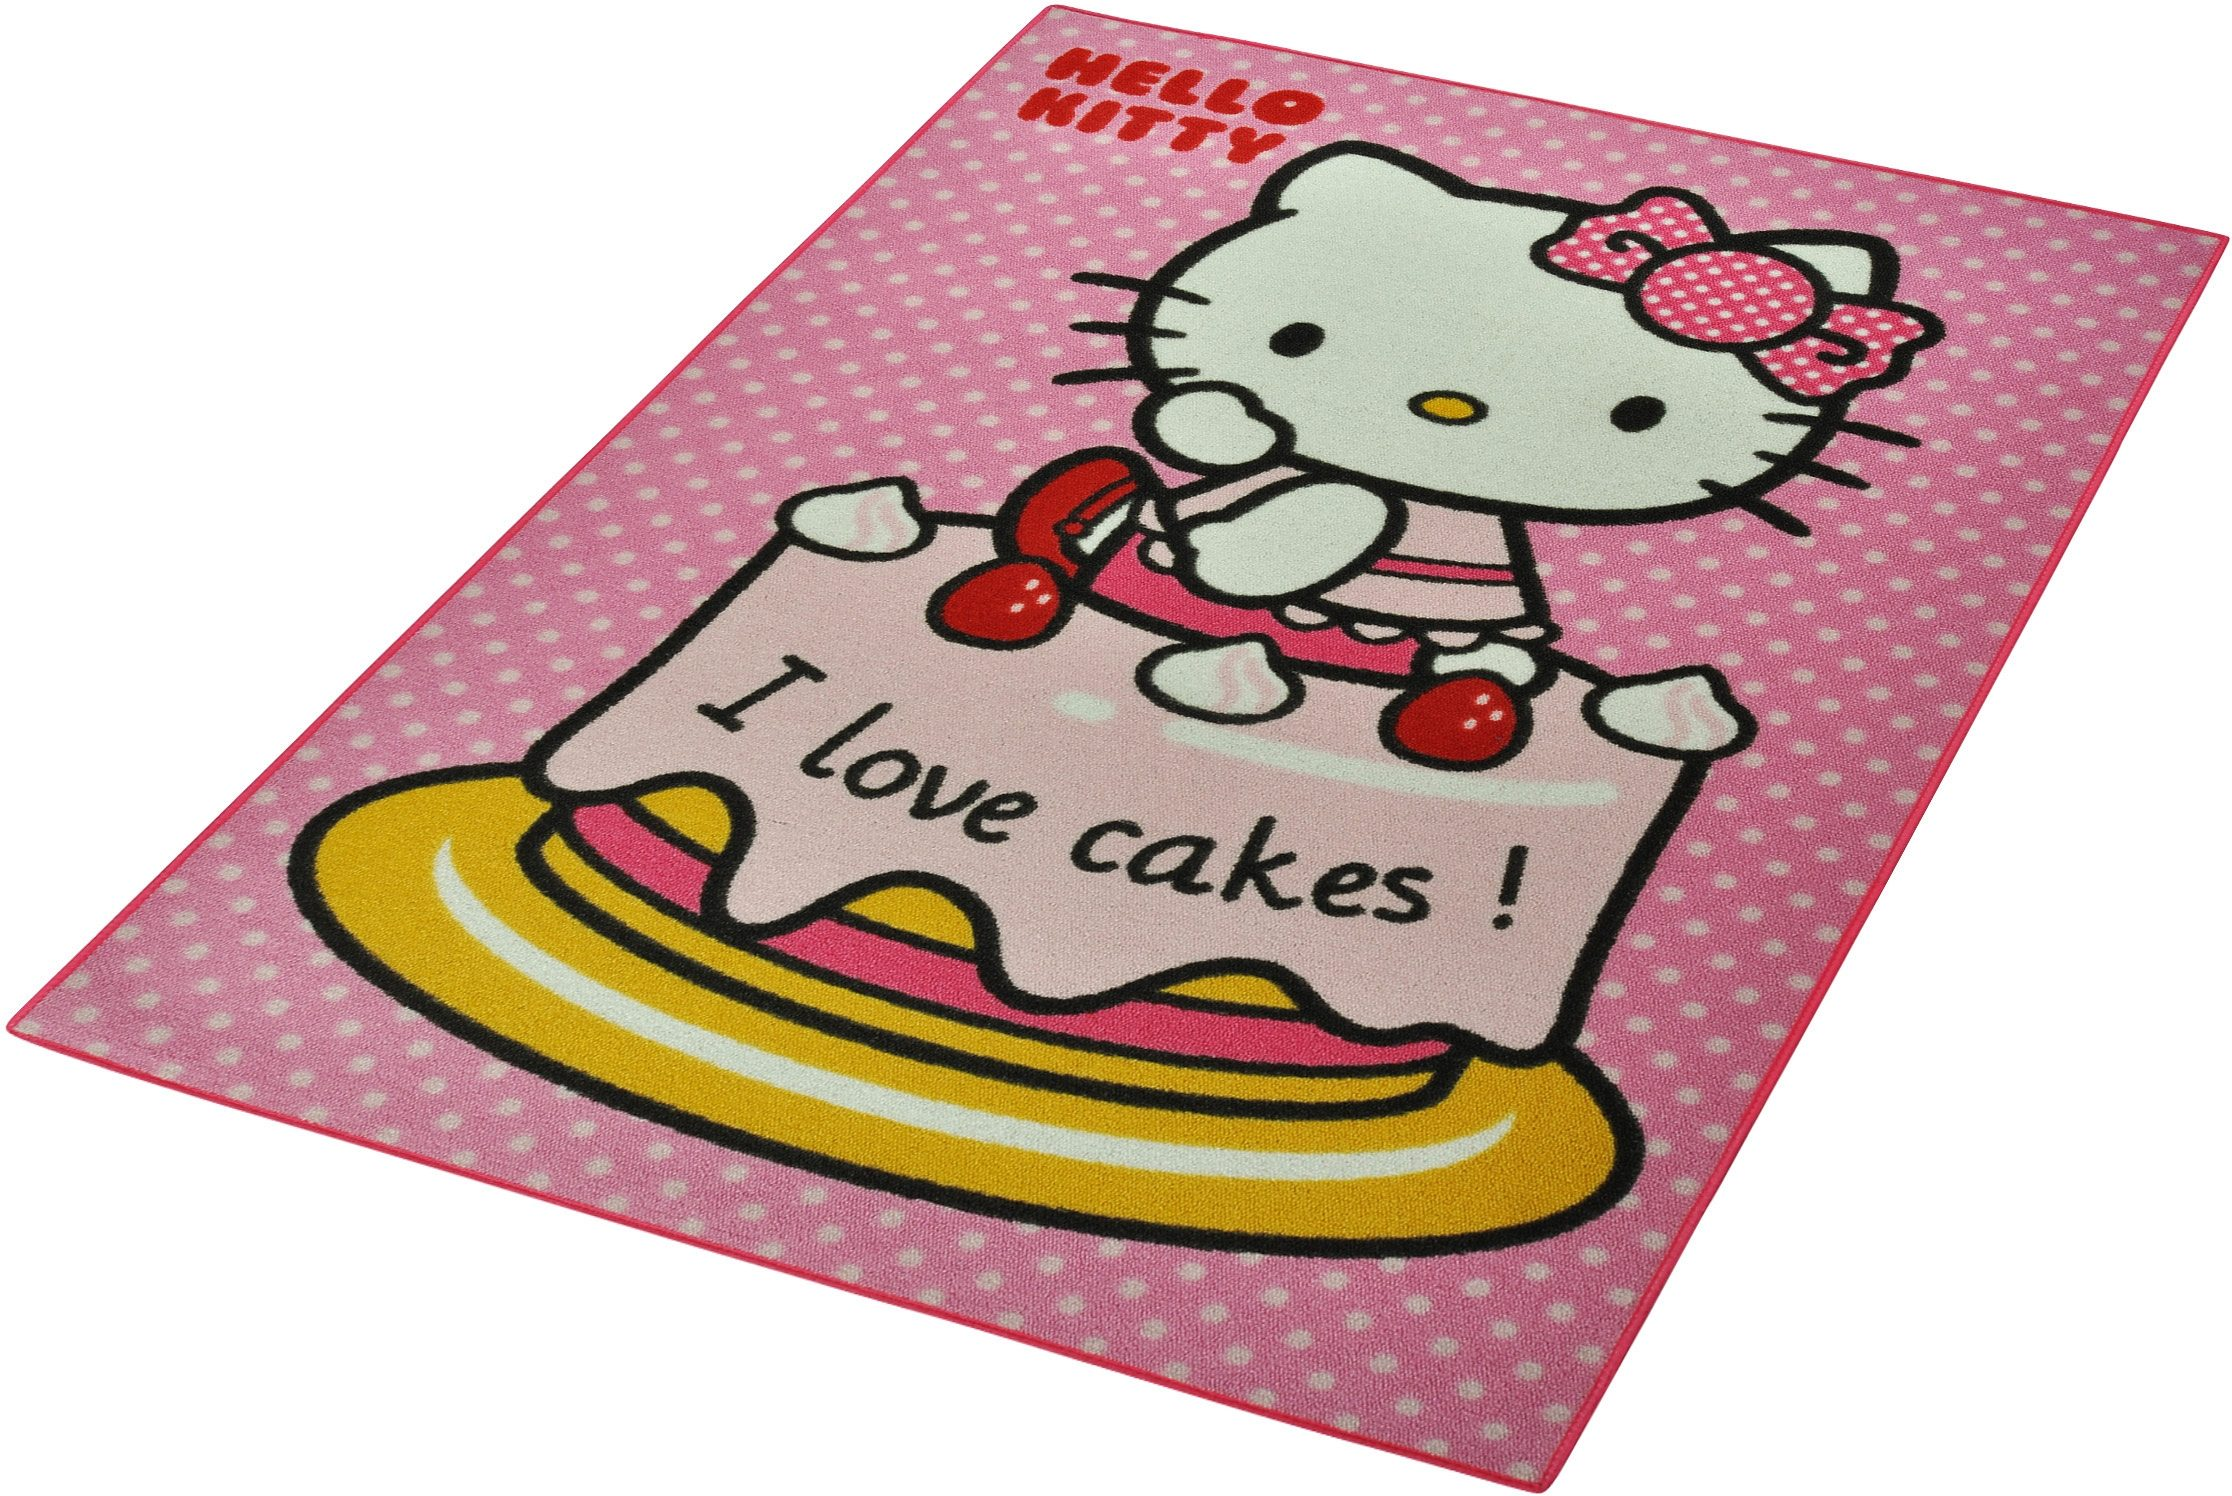 Kinder-Teppich, Hello Kitty Lizenz Teppich »Hello Kitty - Cake«, getuftet